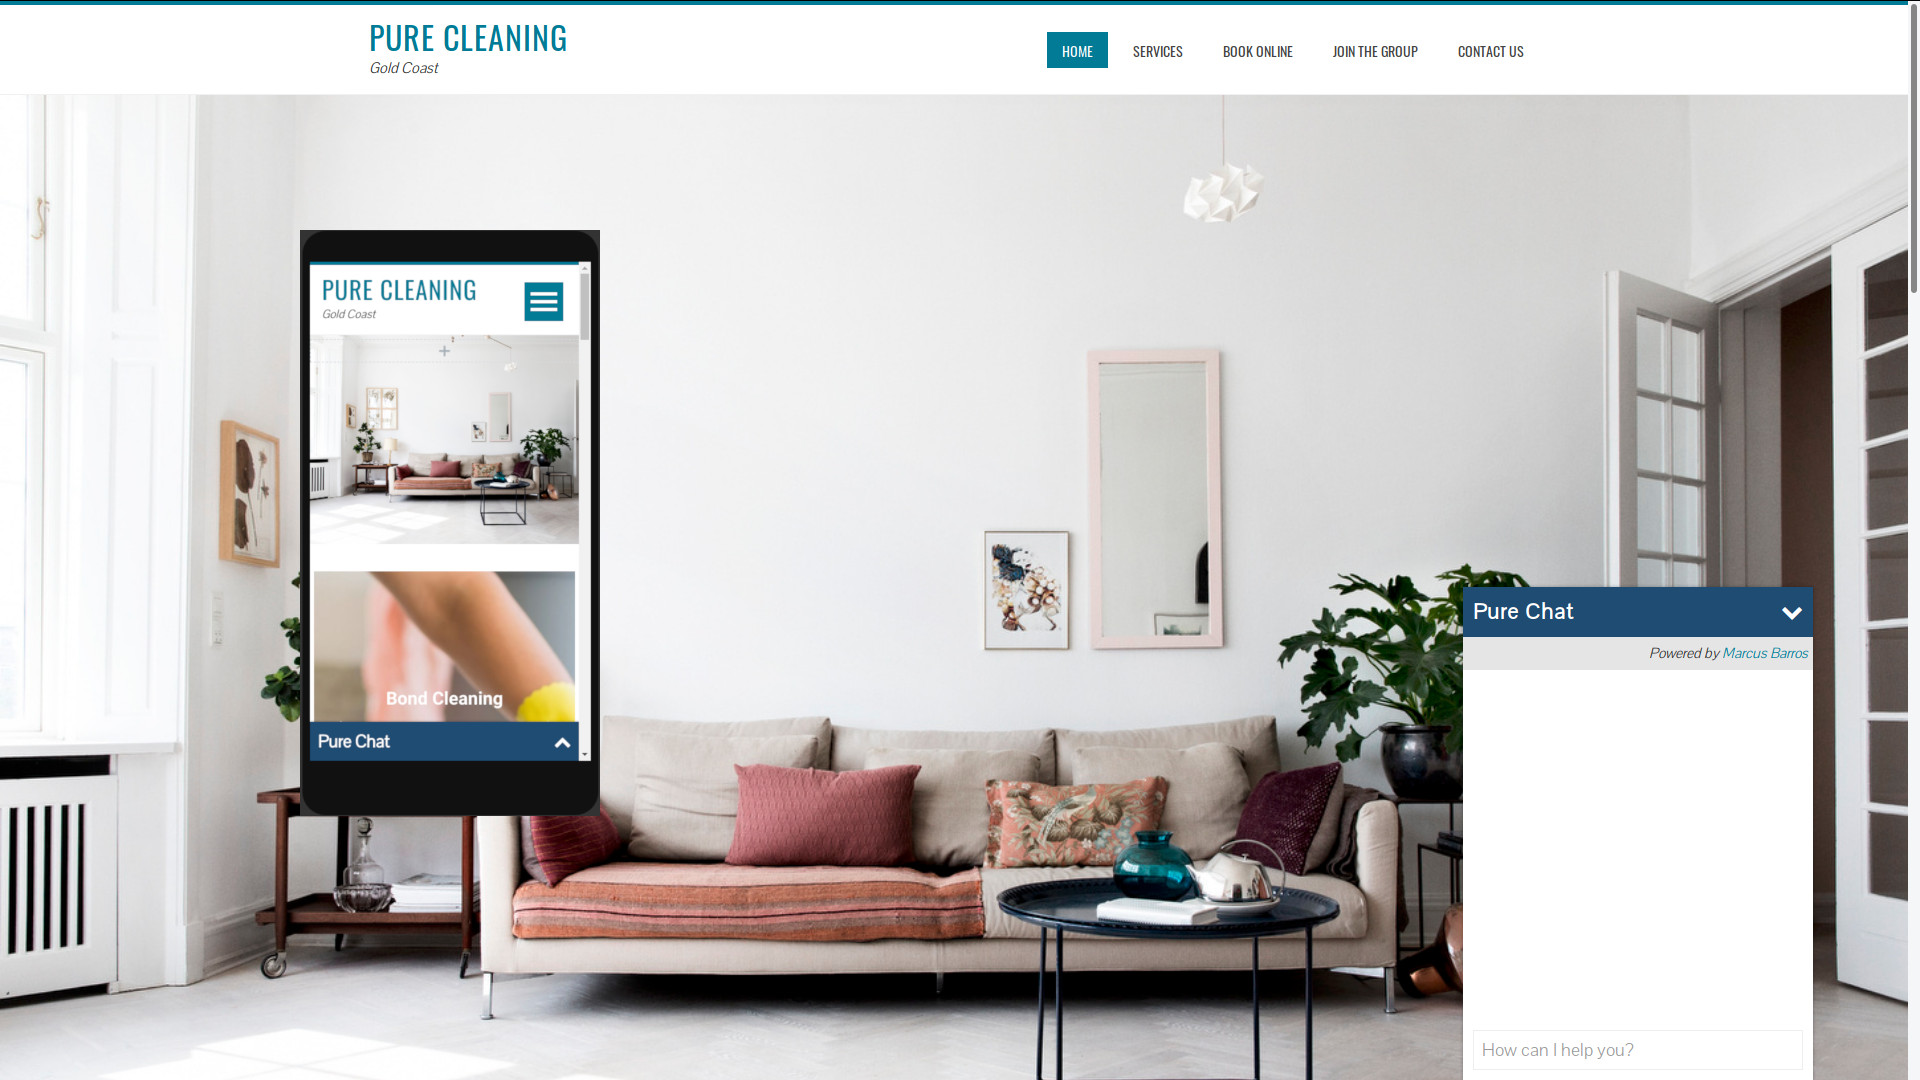 Pure Cleaning Web Page